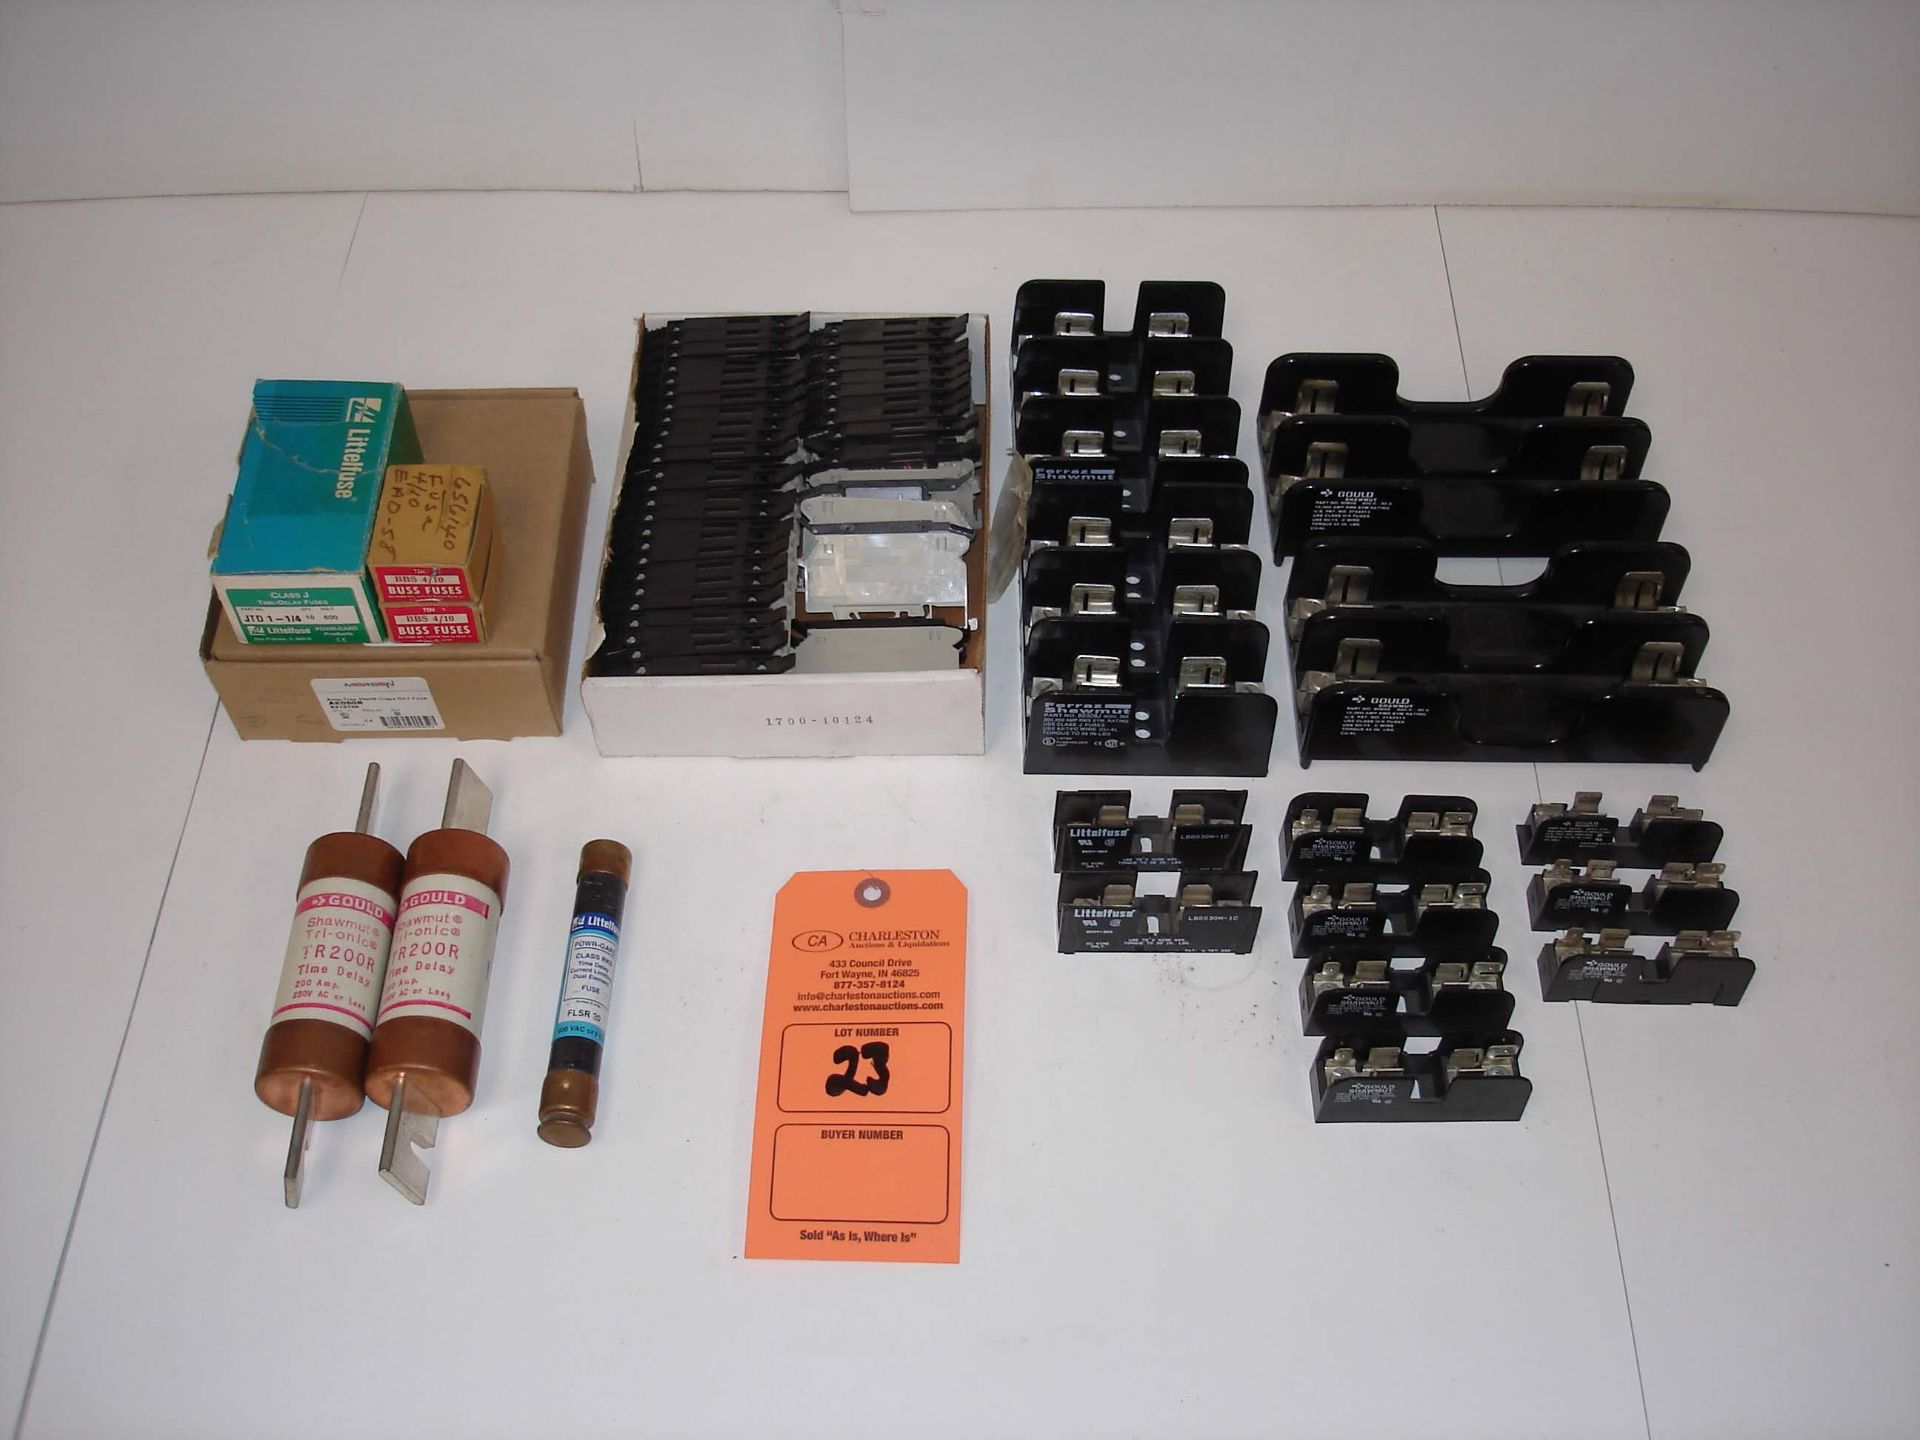 Lot 23 - (20+) MISC FUSES AND ACCESSORIES: BUSSMANN BBS 4/10 10/BOX AND ALL OTHER ITEMS INCLUDED IN PHOTOS!